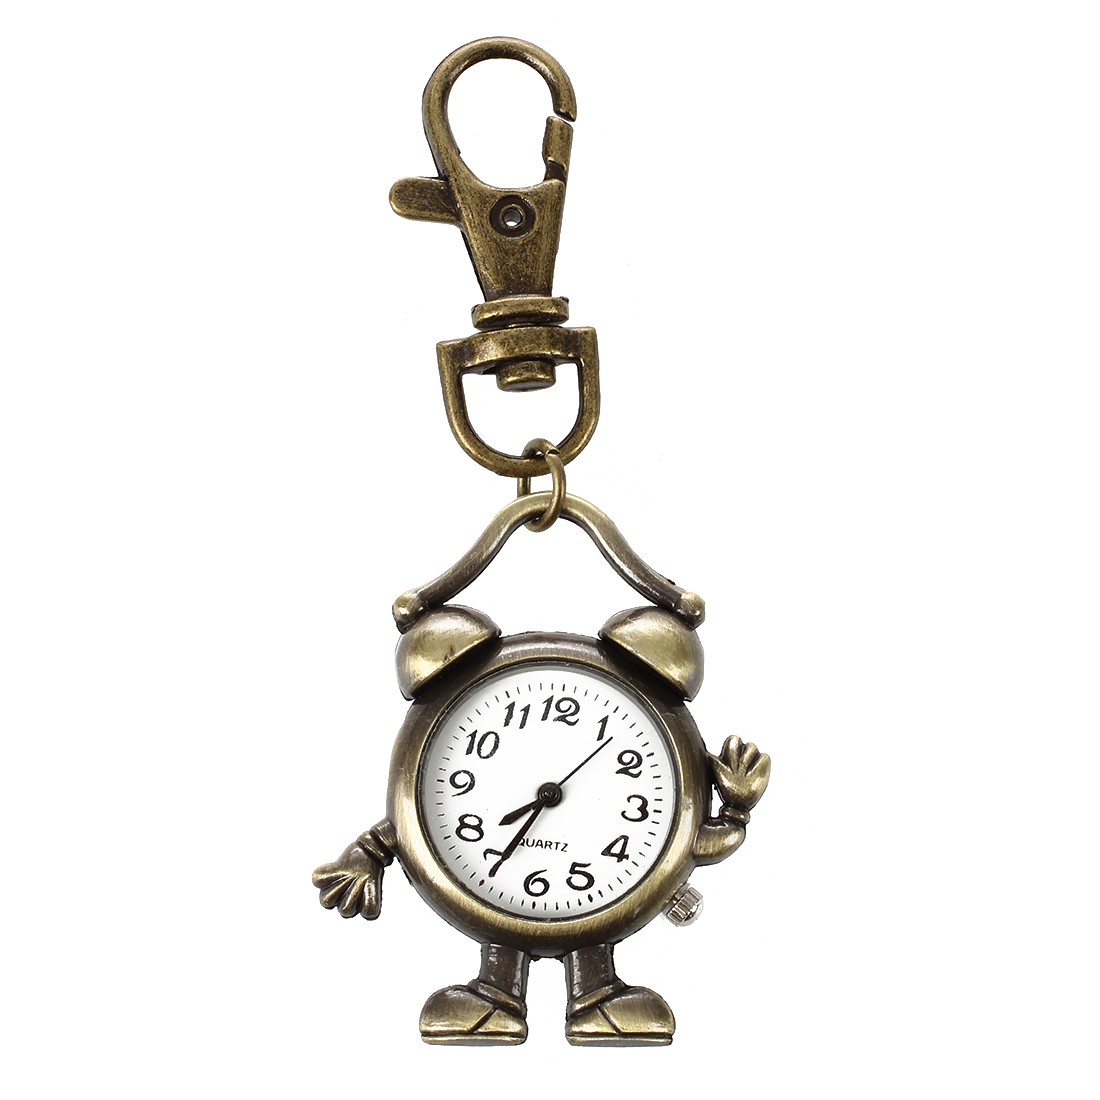 Hot Sale Practical Retro Bronze Metal Clock Robot Keyring Chain With Clock 1.8 New Good Reputation Over The World Pocket & Fob Watches